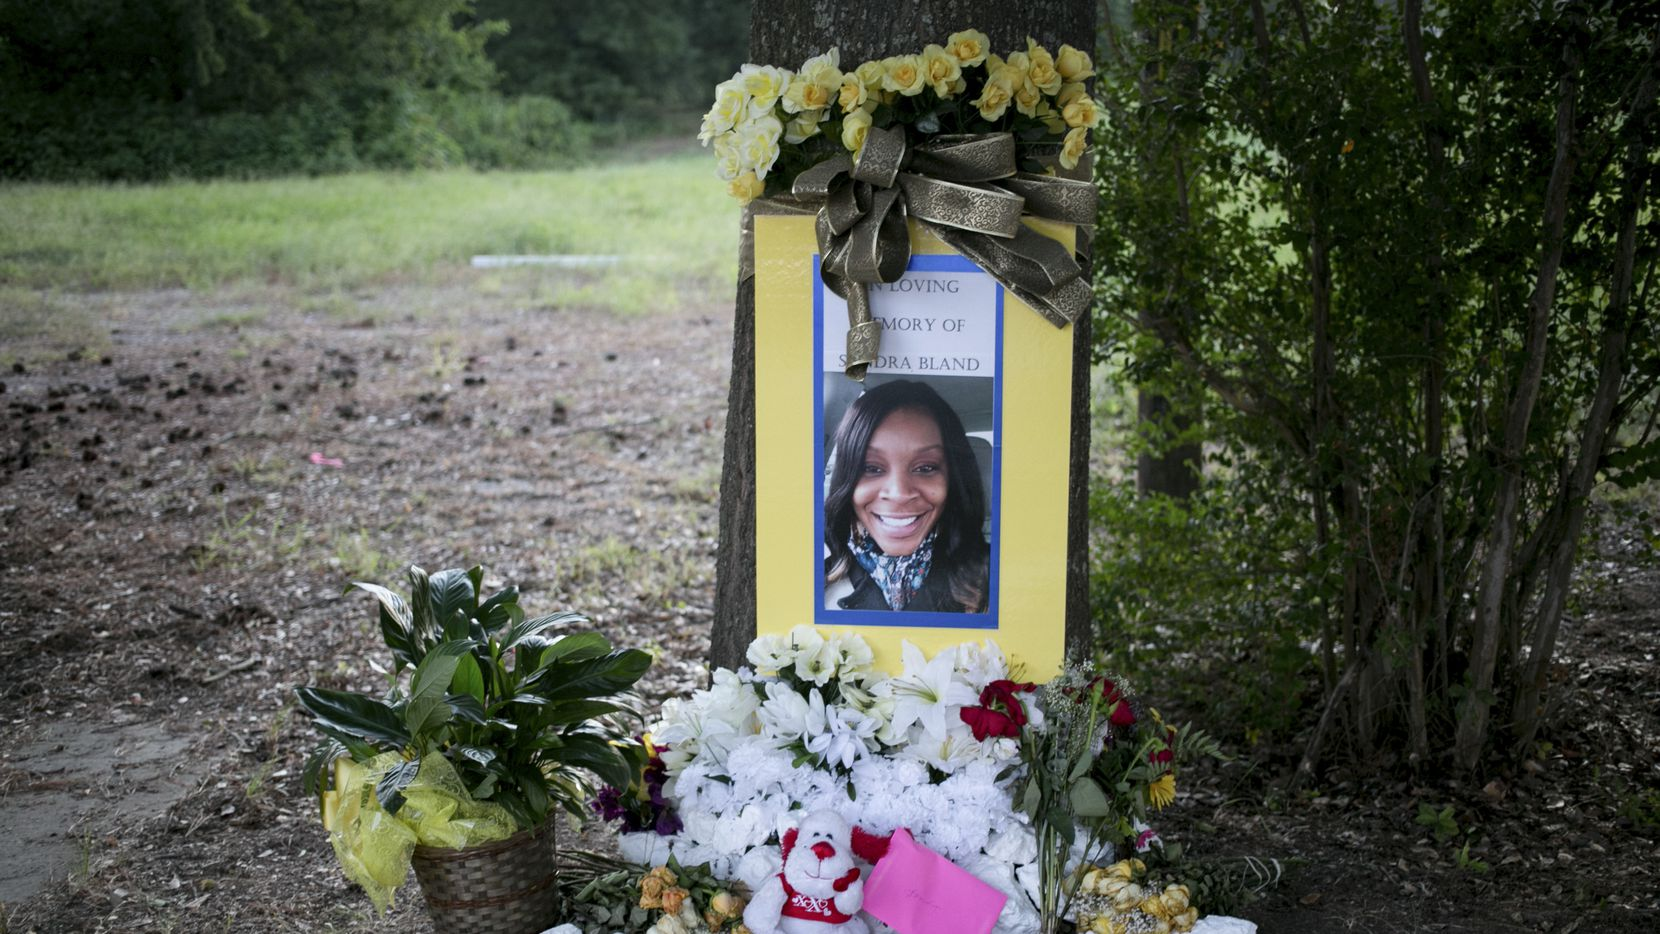 A memorial for Sandra Bland near where she was arrested in Prairie View, Texas, July 23, 2015.